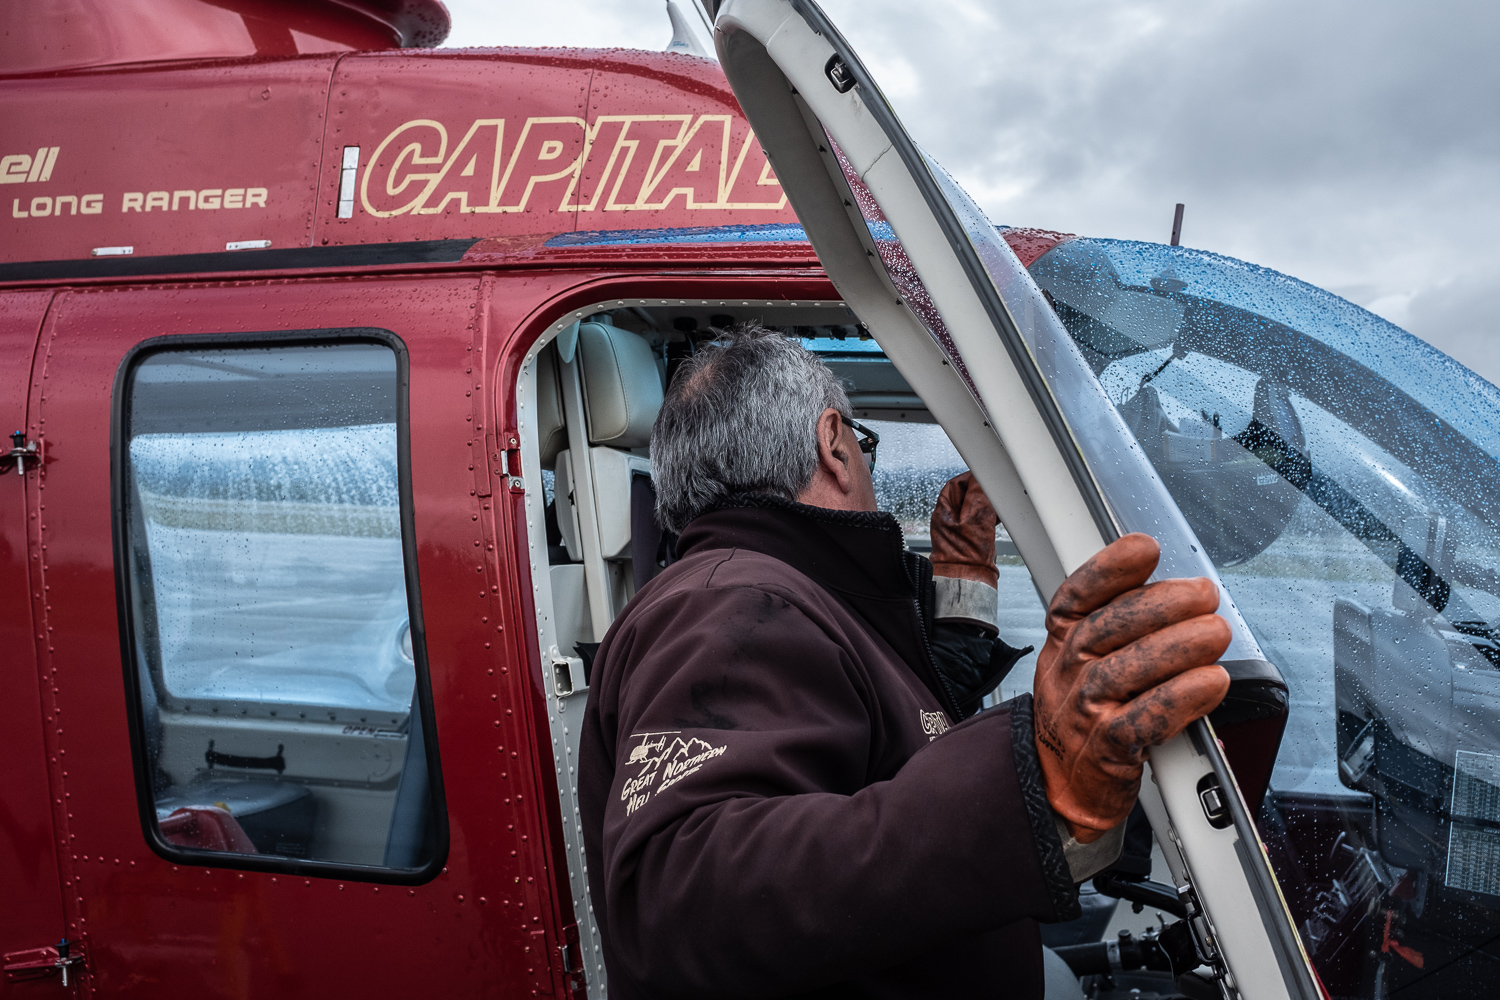 """Delmar Washington: A story of entrepreneurship in the north - By Cat KellyDelmar Washington is usually in the pilot seat of one of his helicopters.""""I'm not a businessman who owns a helicopter business,"""" he says. """"I'm a helicopter pilot who owns a business.""""Read more..."""